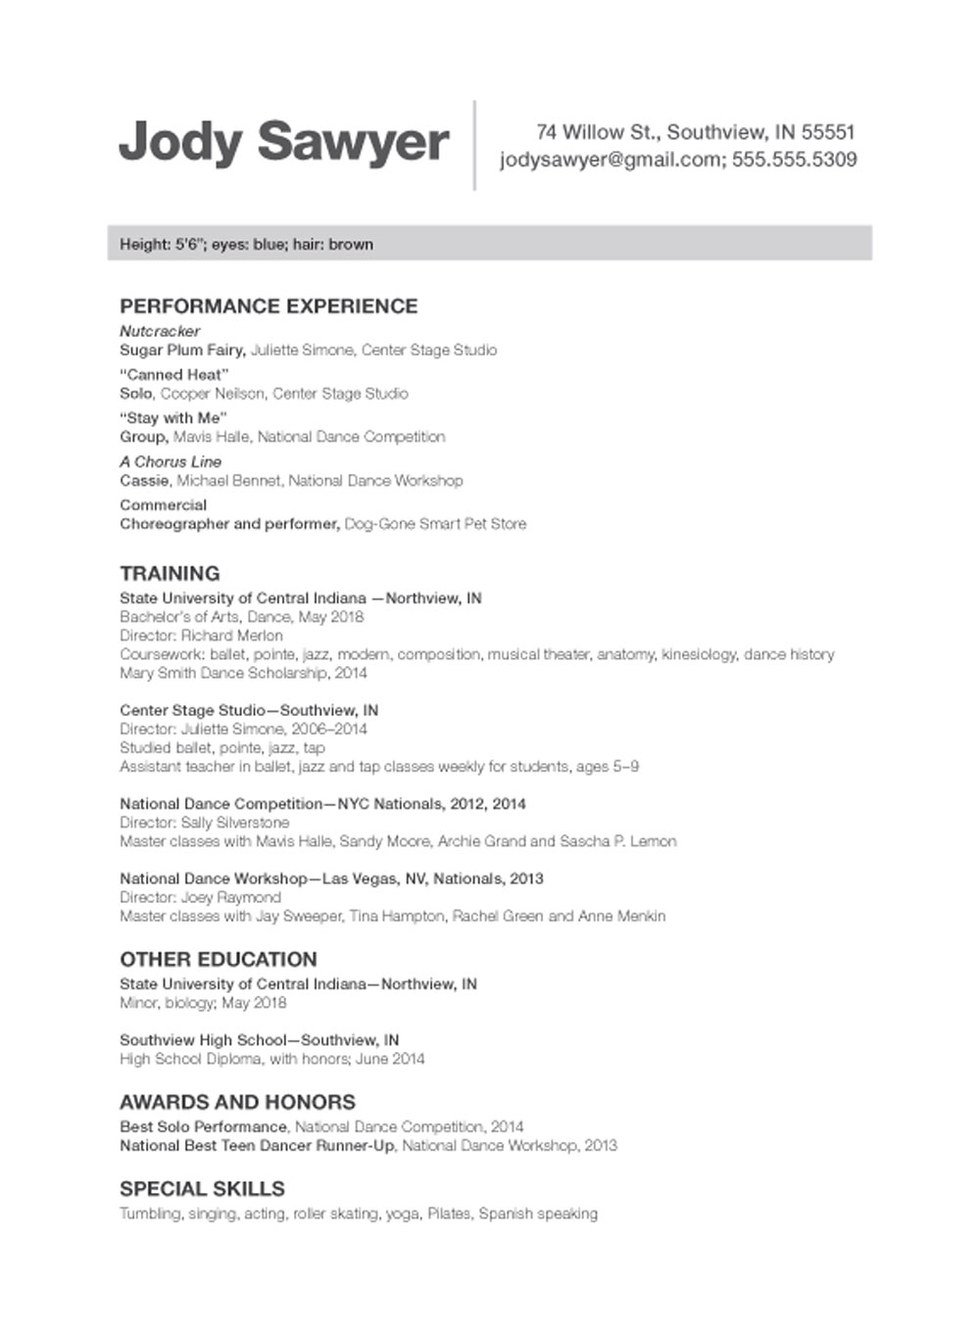 choreographer sample resume resume cv cover letter - Sample Dancer Cover Letter